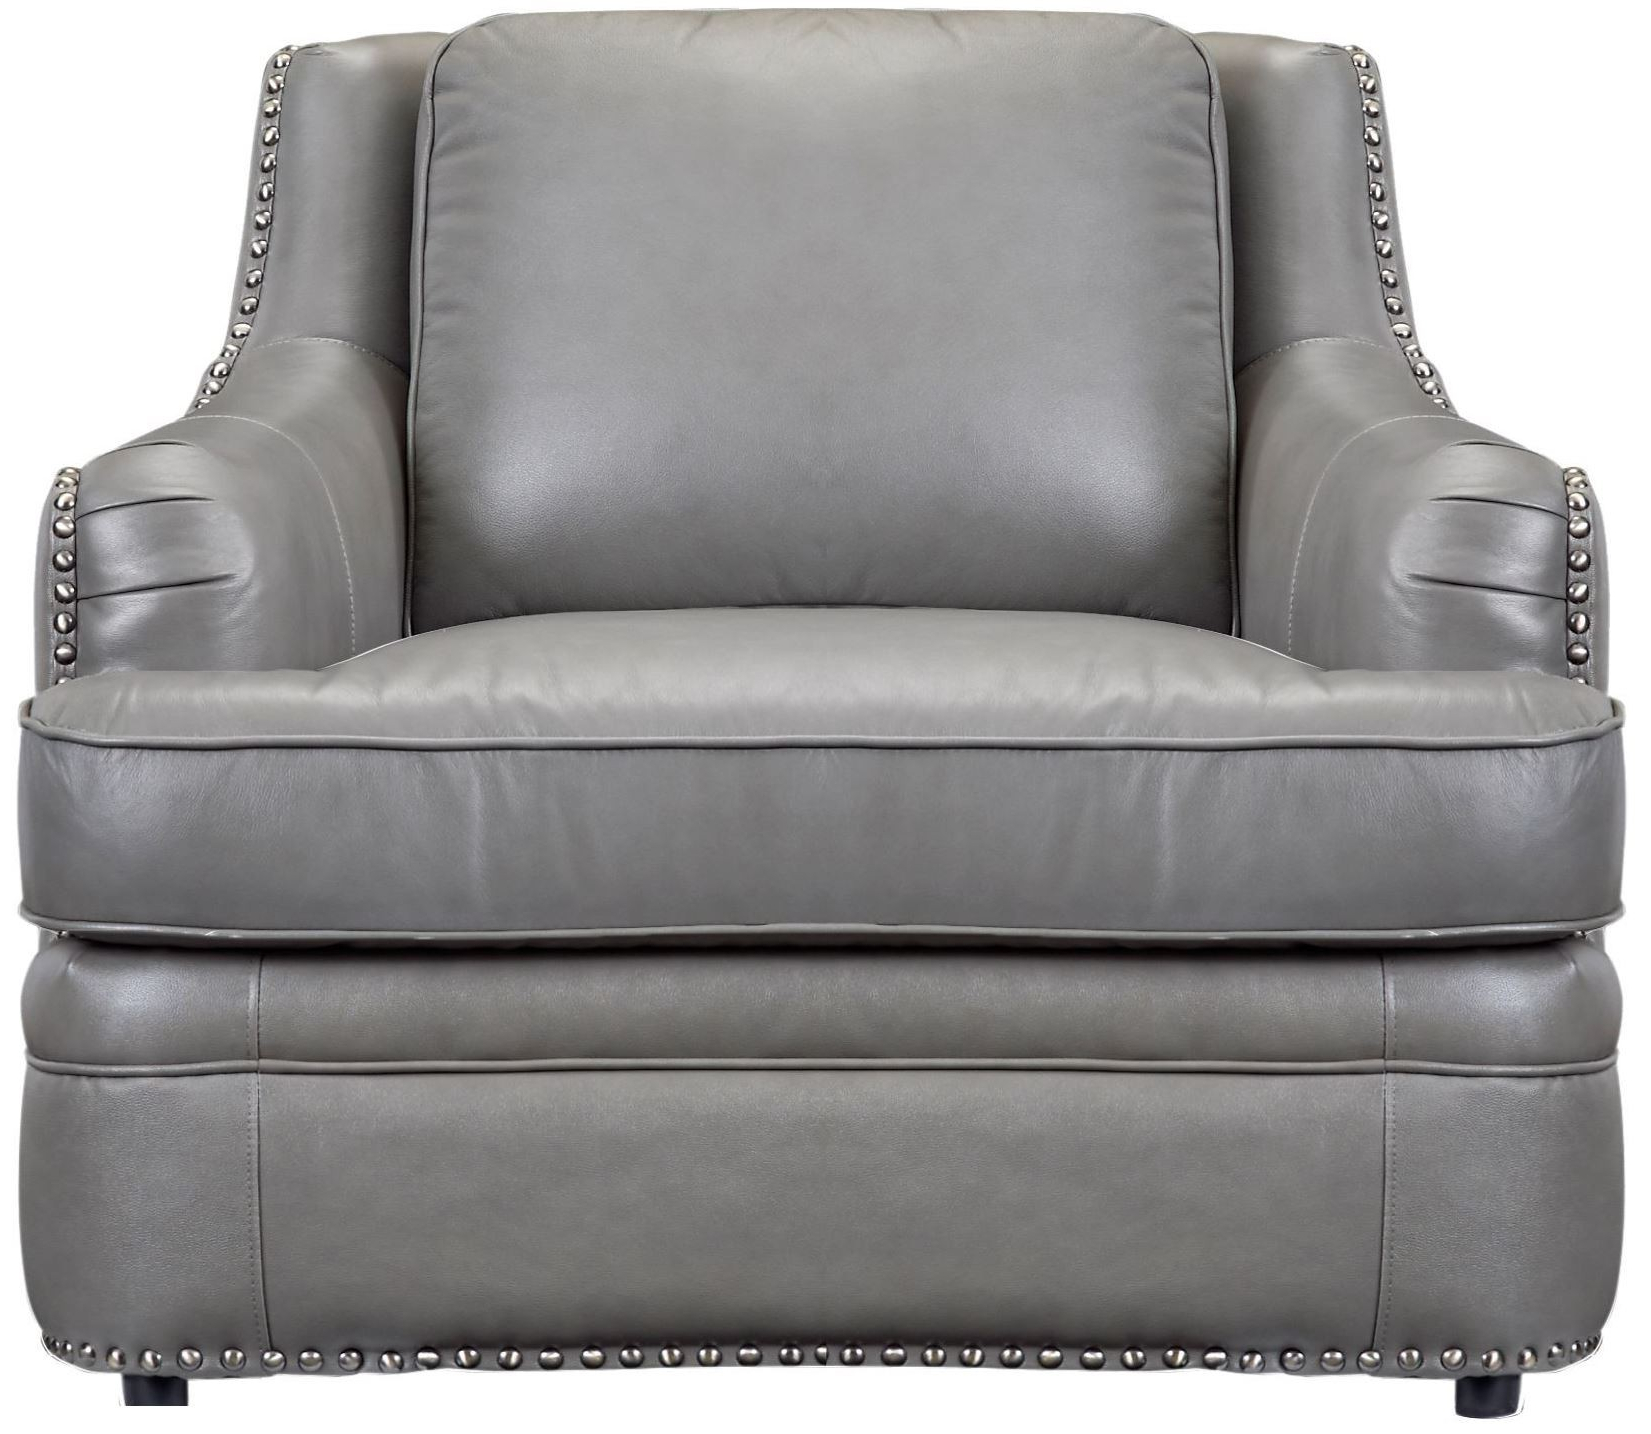 Recent Dark Grey Swivel Chairs Intended For Tulsa Dark Gray Swivel Chair – Brown's Furniture Showplace (View 17 of 20)